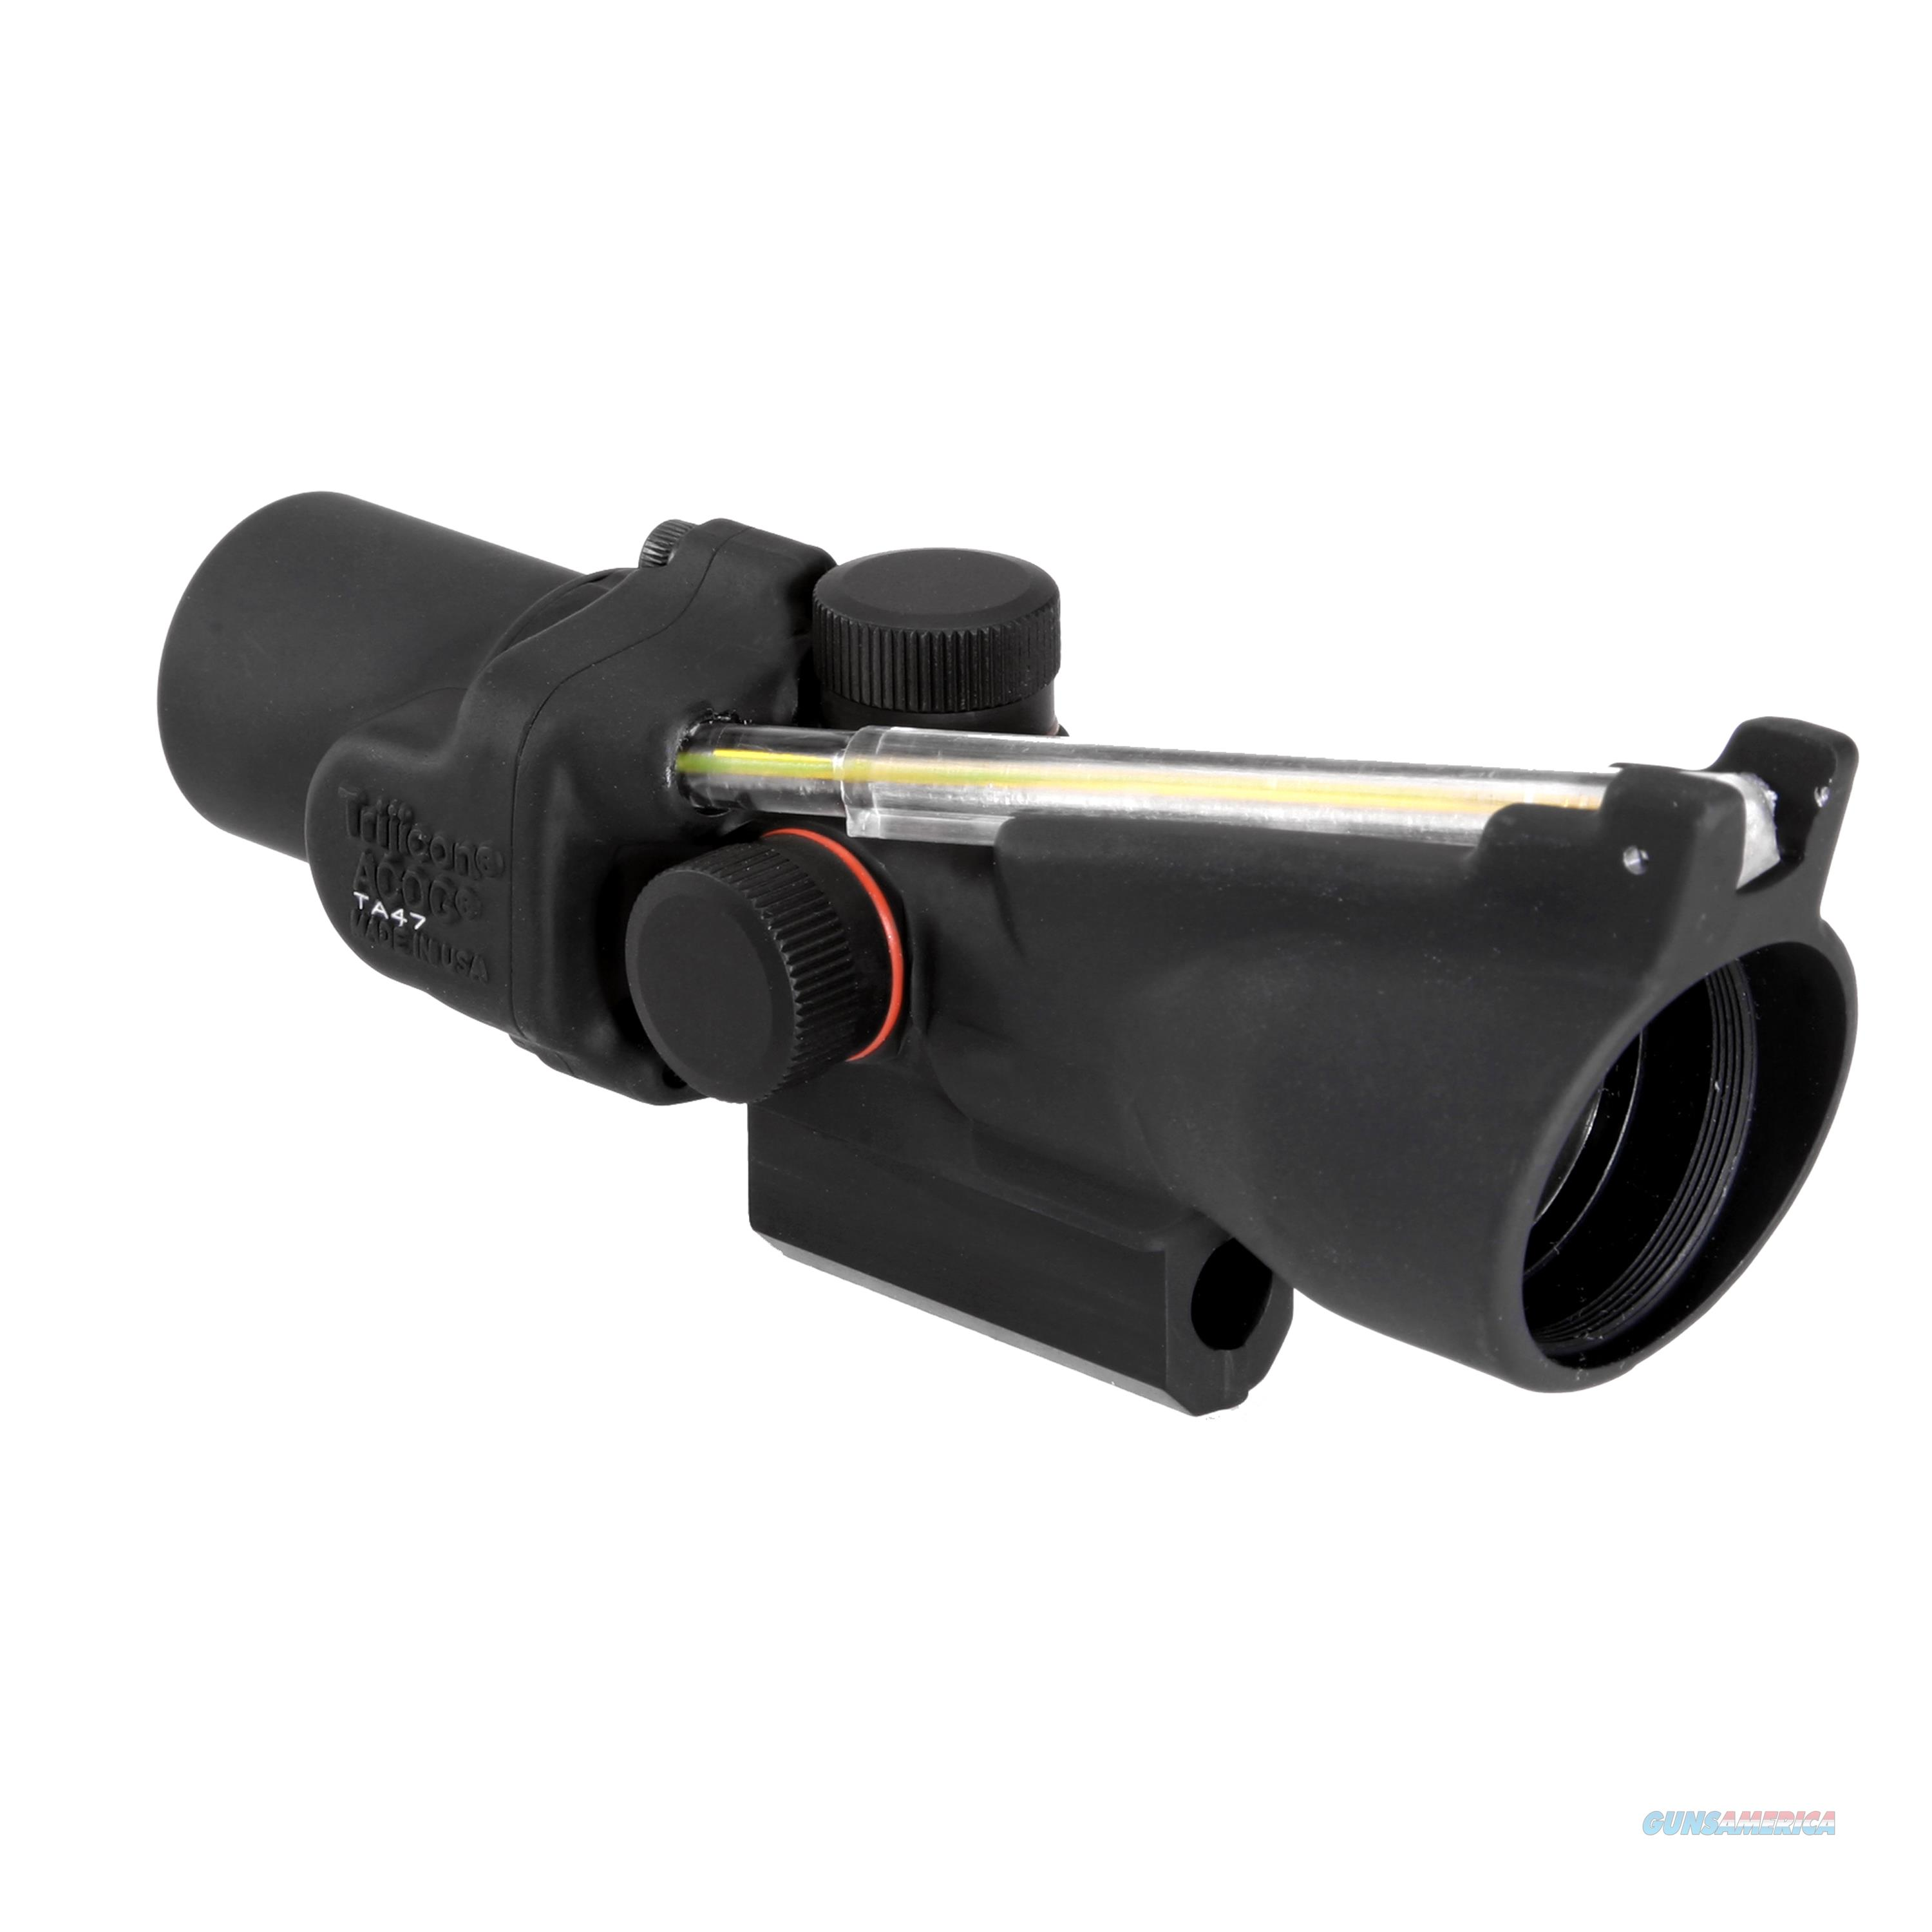 Trijicon Acog 2X20mm Compact Dual Illuminated Scope TA47C400148  Non-Guns > Scopes/Mounts/Rings & Optics > Mounts > Other